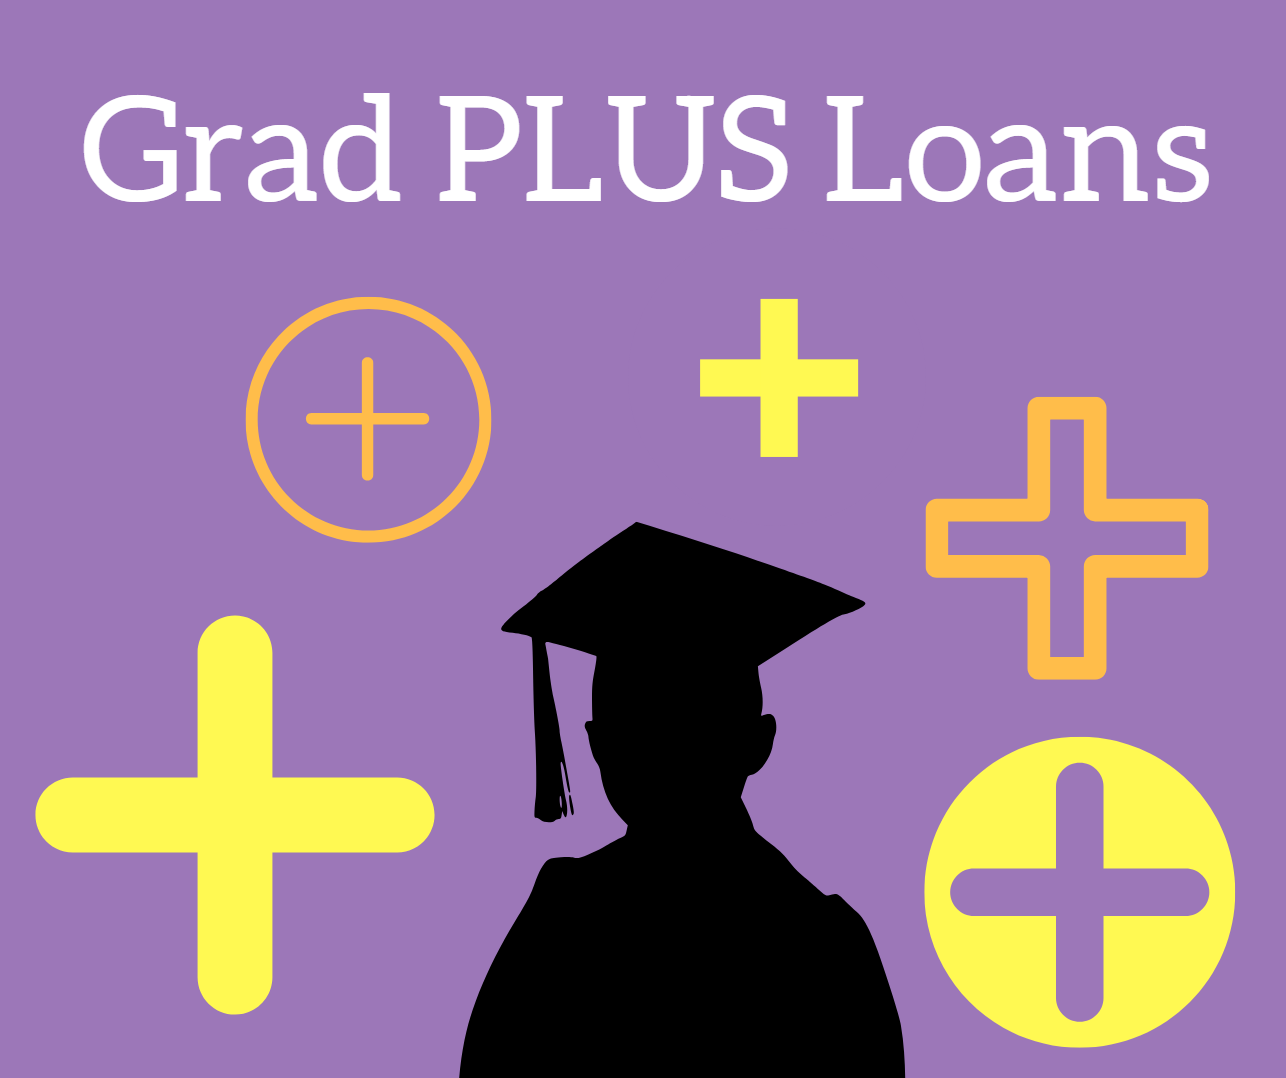 How can grad PLUS loans help you afford grad school